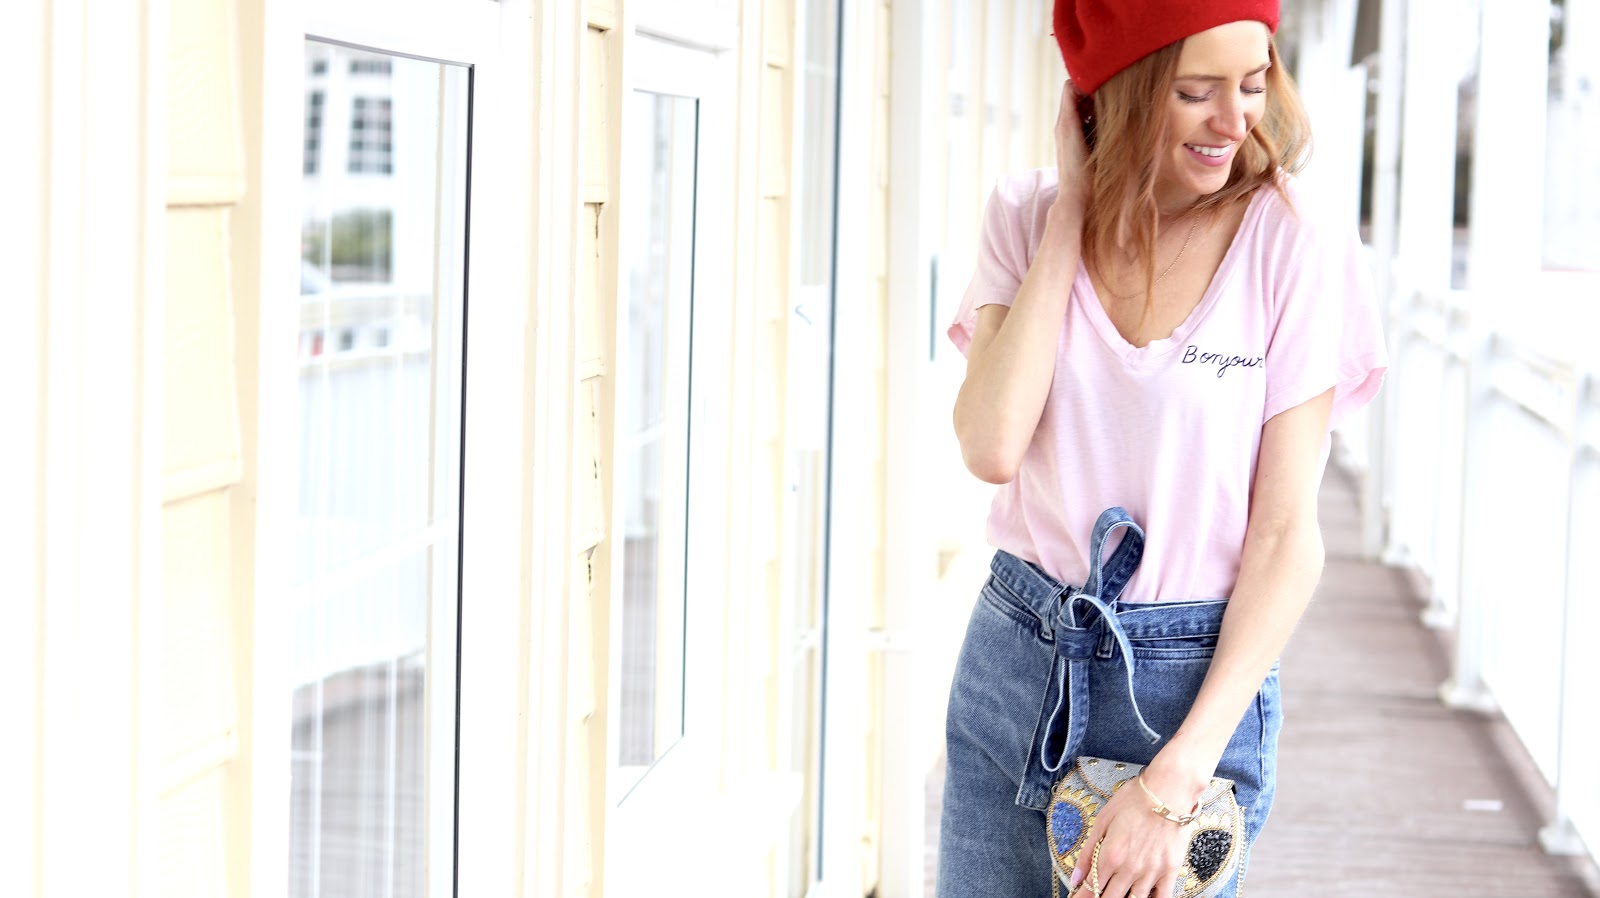 Wide High Waist Jeans H&M, Spring Denim Trends 2018, Pastels & Pastries, Red Beret, Boujour tee shirt Sundry, Soukh bag, spring style